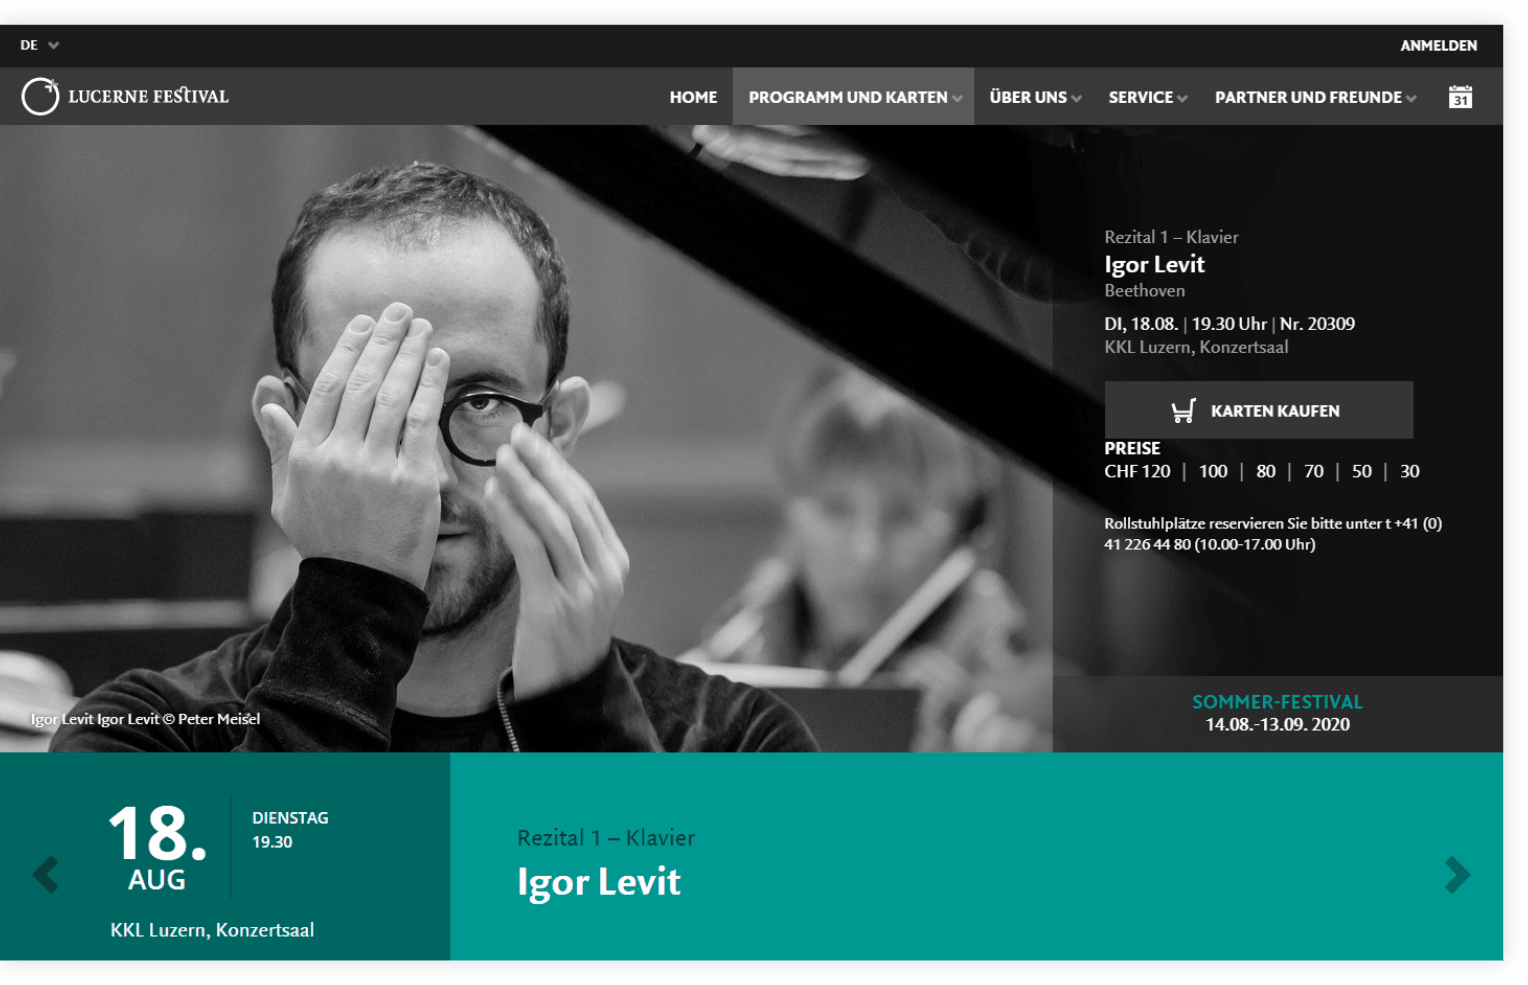 Konzert Detailansicht  –  Lucerne Festival | Design, Mobile-First, Relaunch, Redesign, User-Experience Workshop, Responsive, Personas-Modellierung, Django, Django Framework, User Centered Design